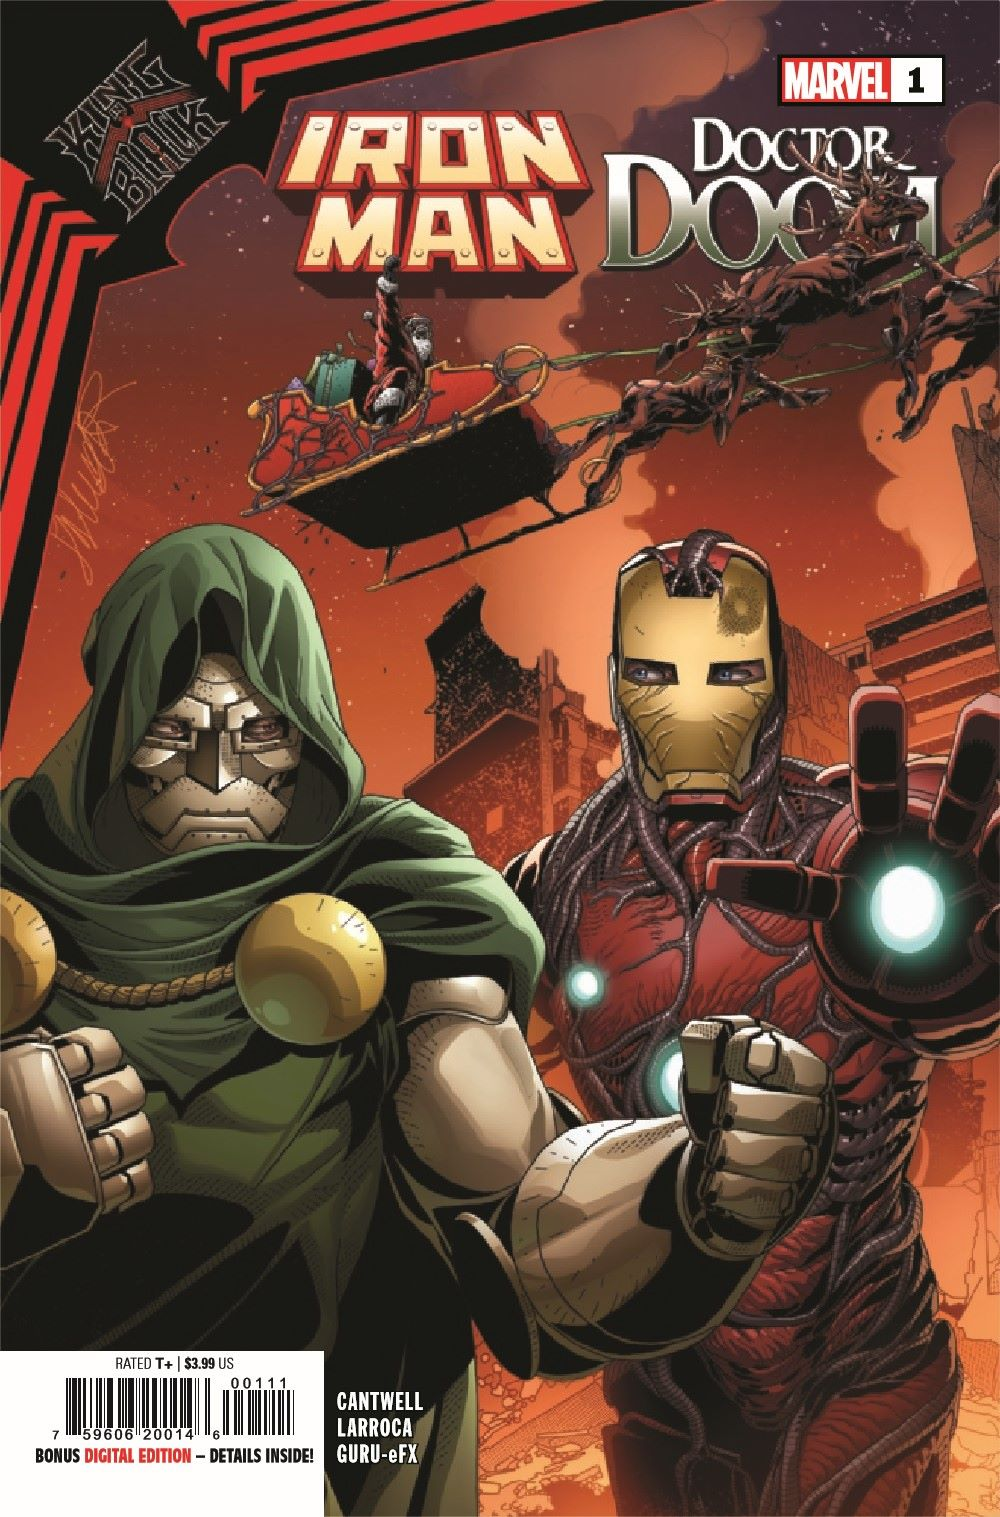 IMKIB2020001_Preview-1 ComicList Previews: KING IN BLACK IRON MAN DOCTOR DOOM #1